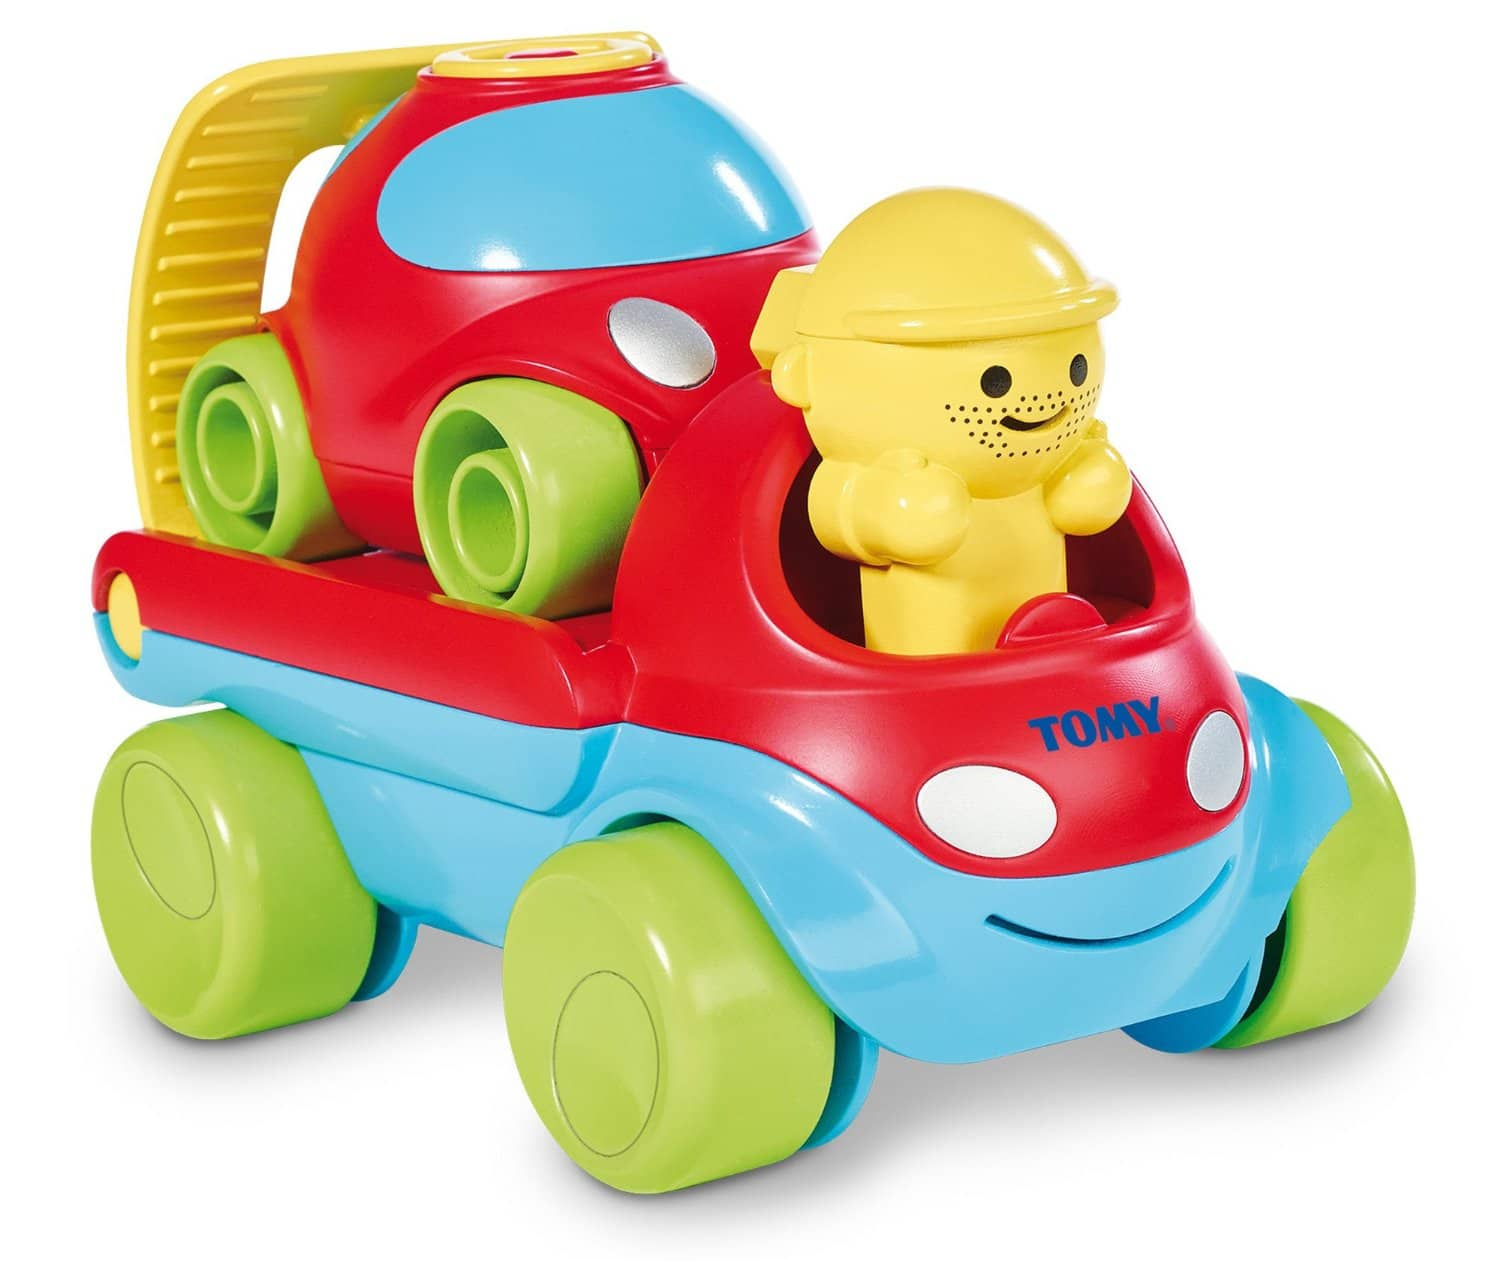 Tomy 3-in-1 Road Rescue Fix & Load Tow Truck $5.78 @ Amazon w/ Free Prime Shipping or FS @ $49